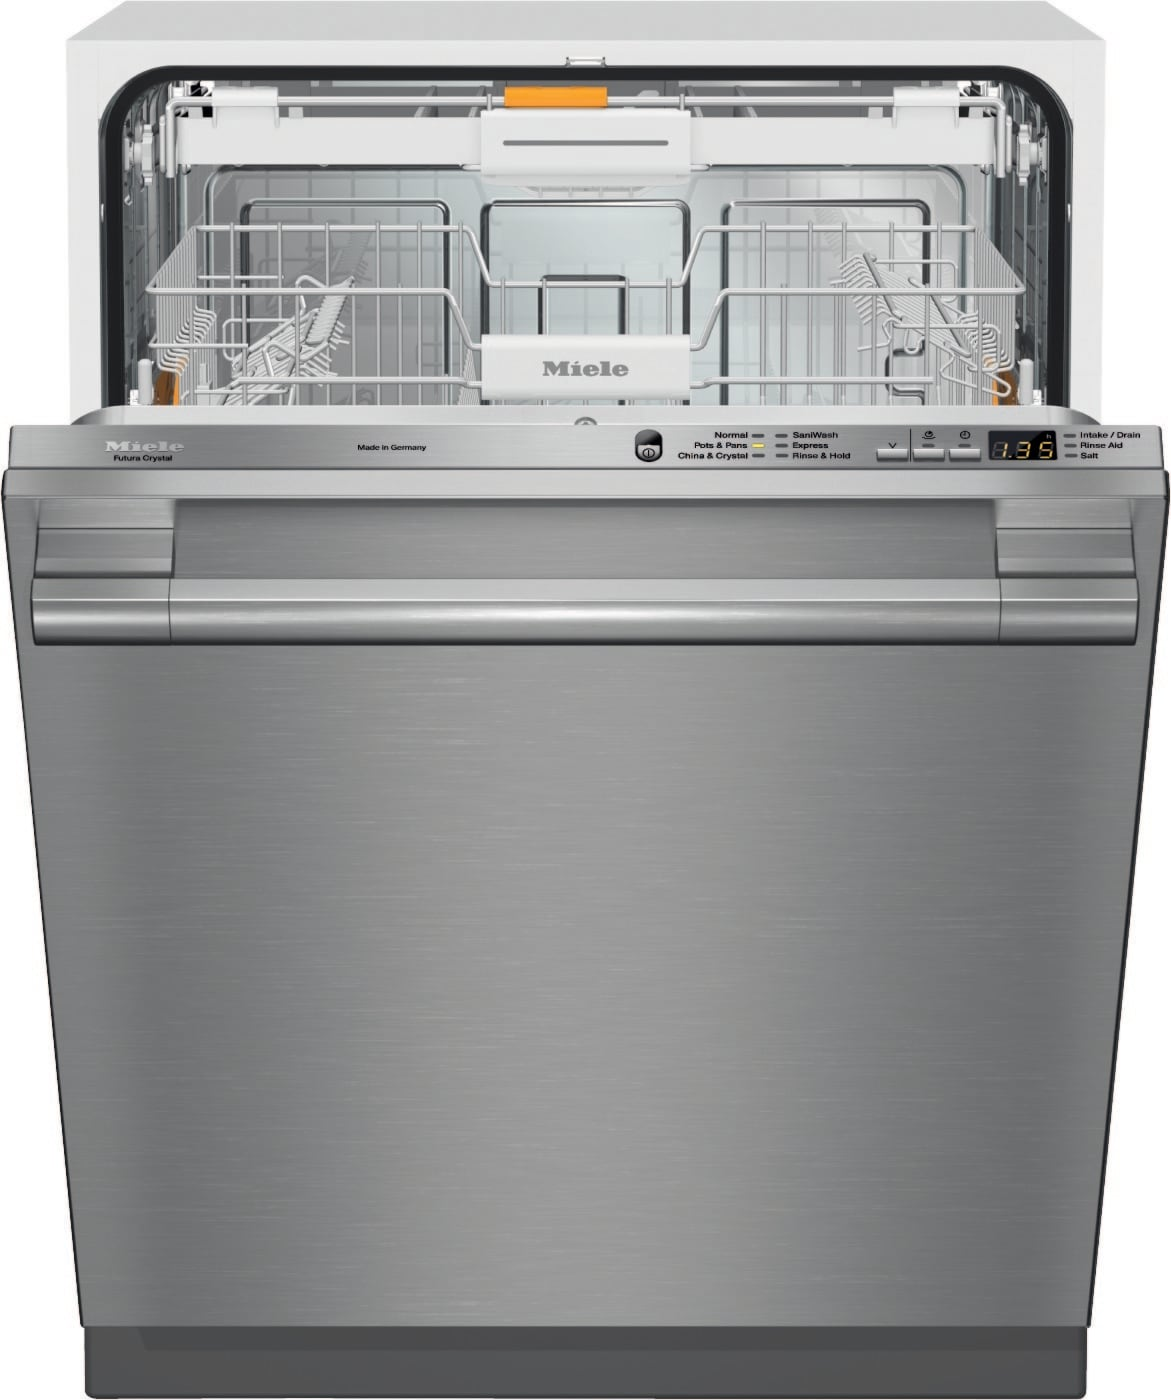 dishwasher Dishwasher types - dishwasher types - dishwashers - product guide built-in, undercounter dishwashers fit most households' needs as the most popular type of dishwasher.